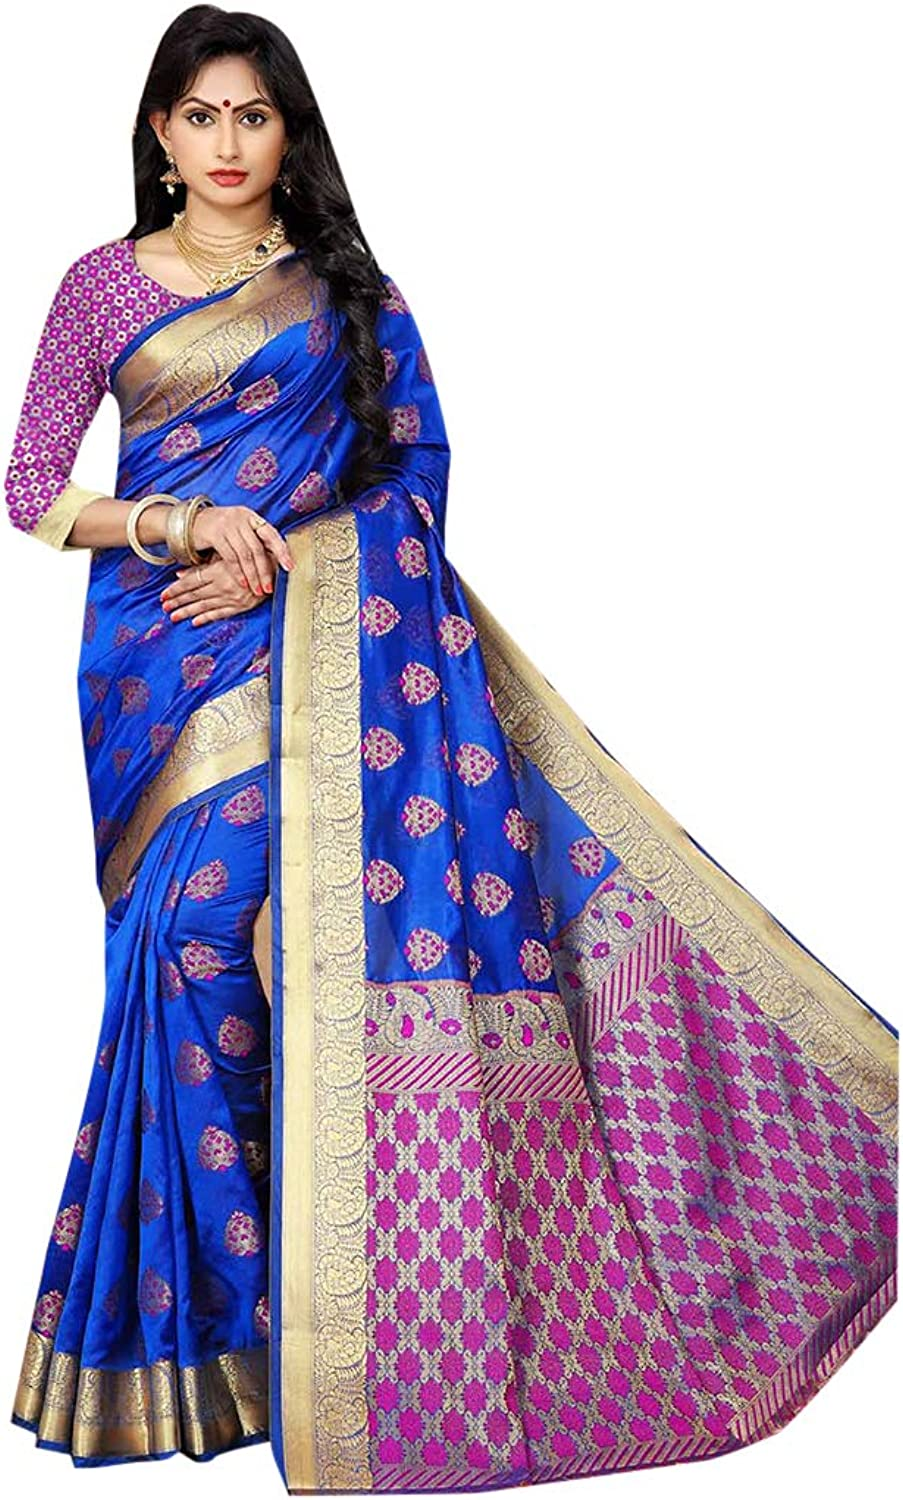 Royal bluee Indian Ethnic Traditional Designer Saree with Blouse piece Festive Women Sari for Party 7781